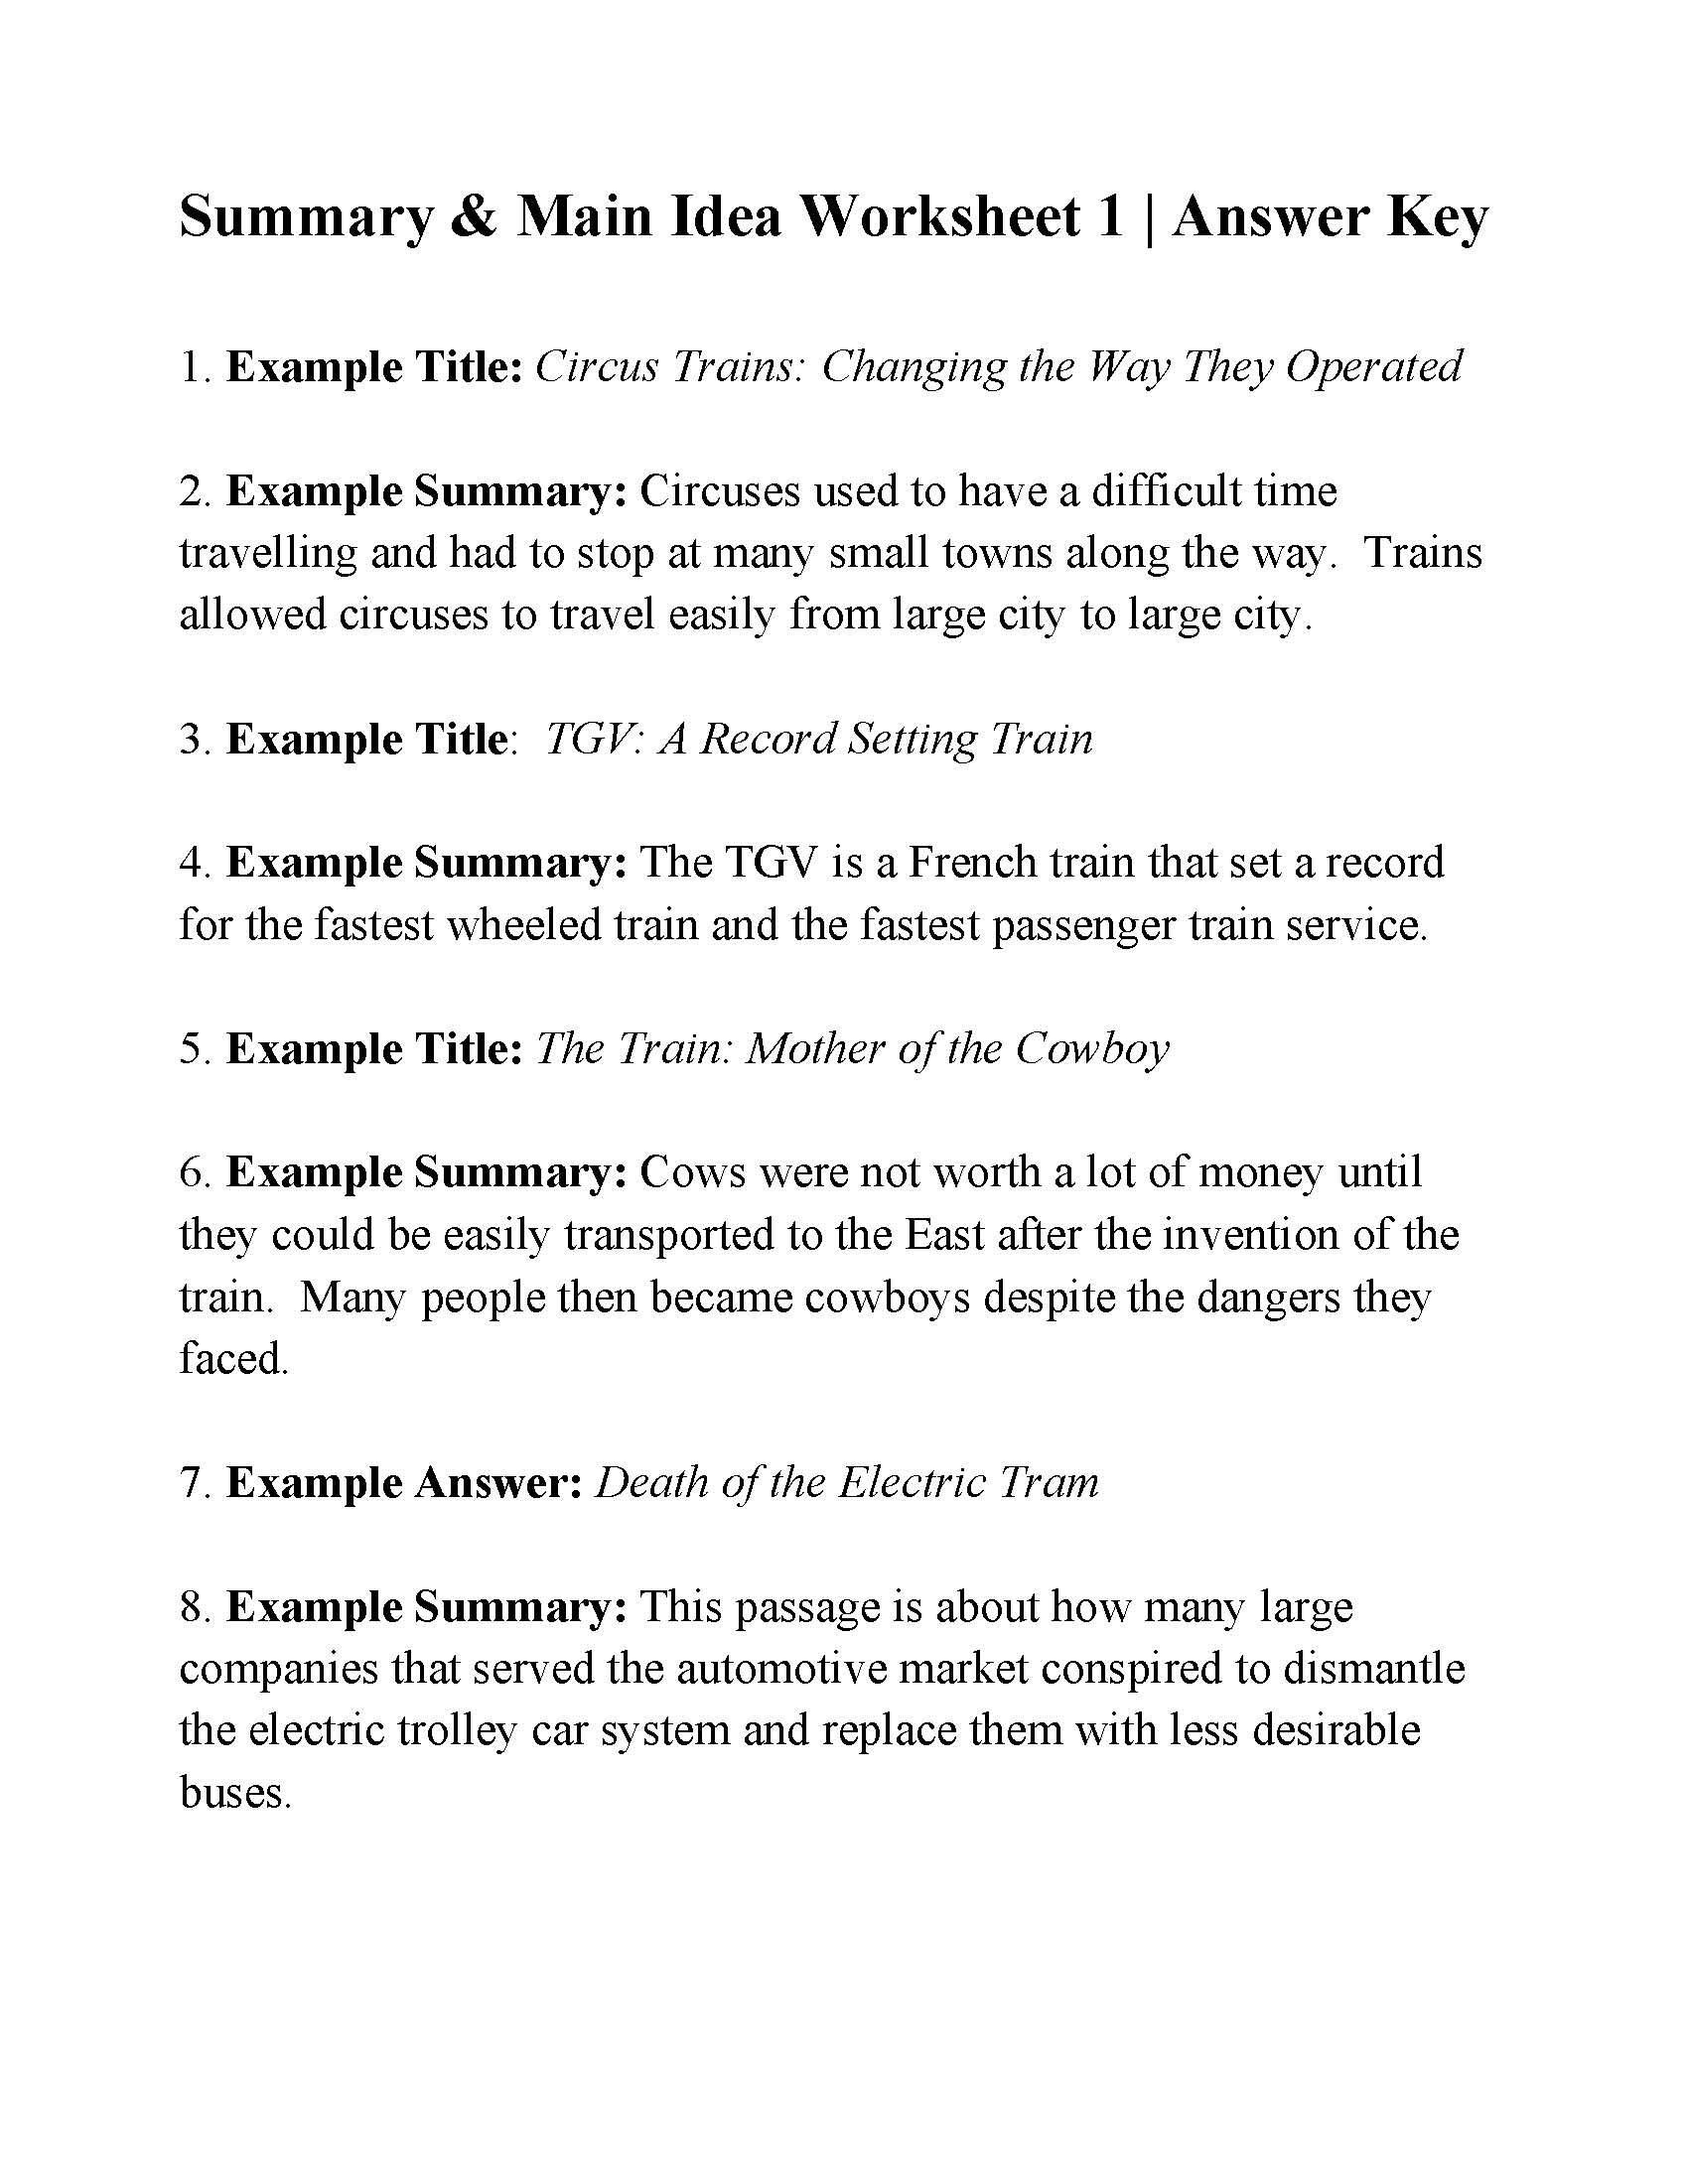 Main Idea and Summary Worksheets This is the Answer Key for the Summary and Main Idea